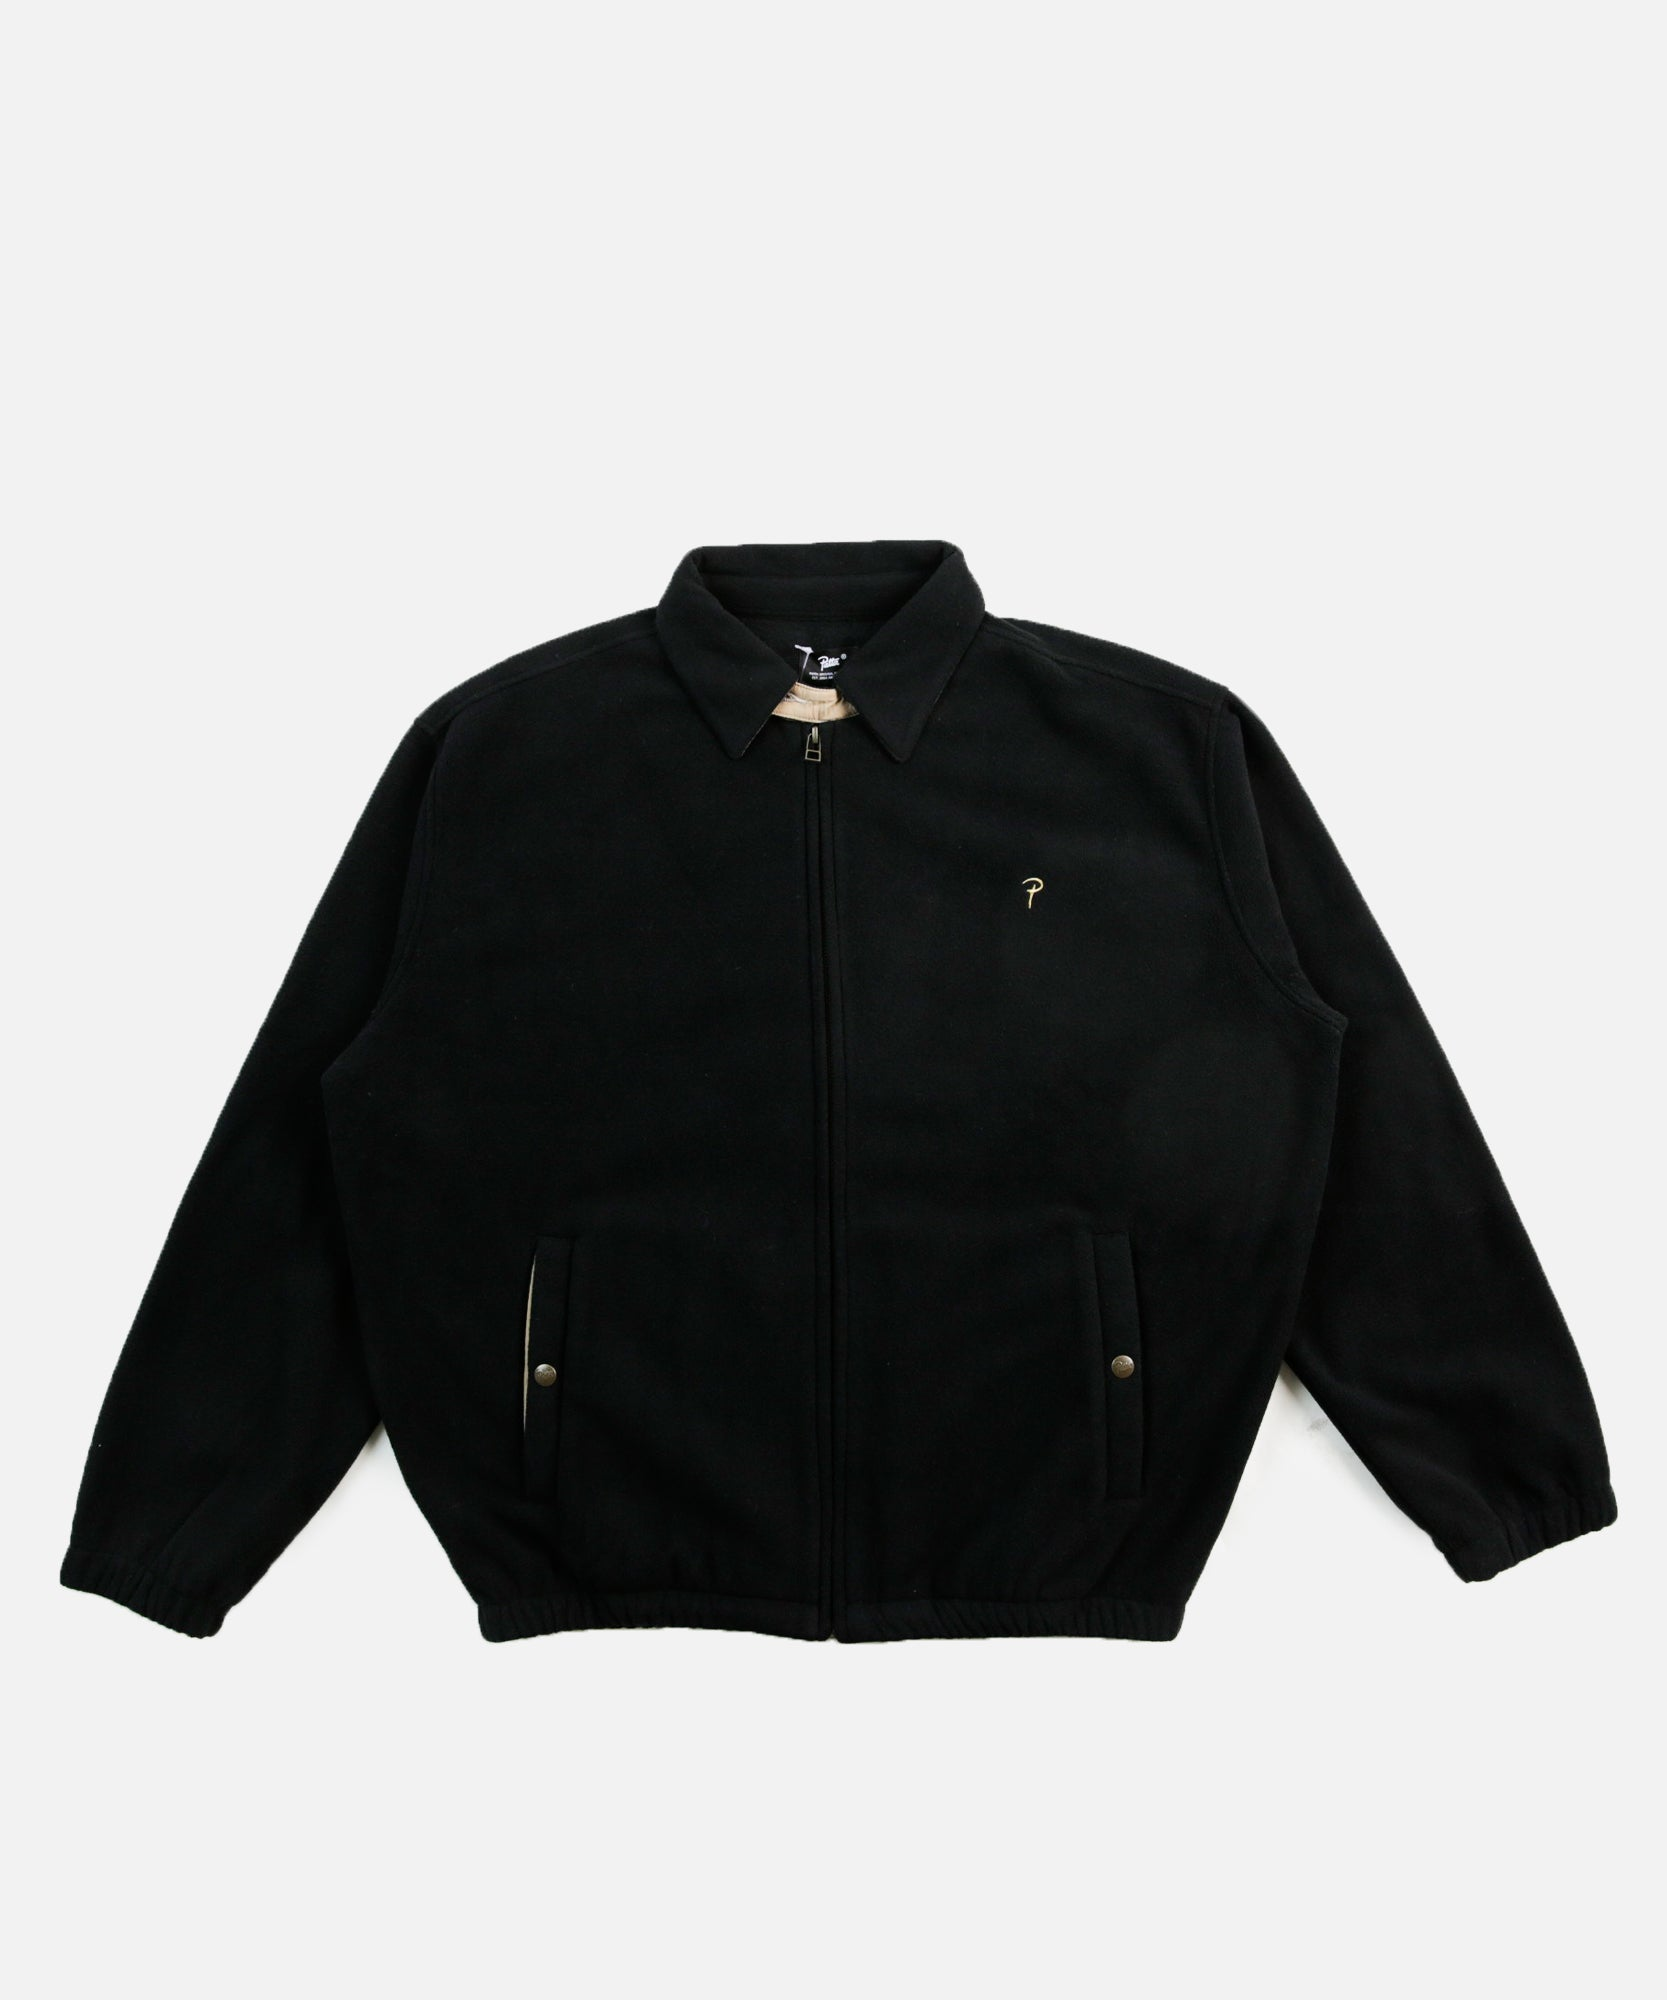 Patta Polar Fleece Jacket (Black)